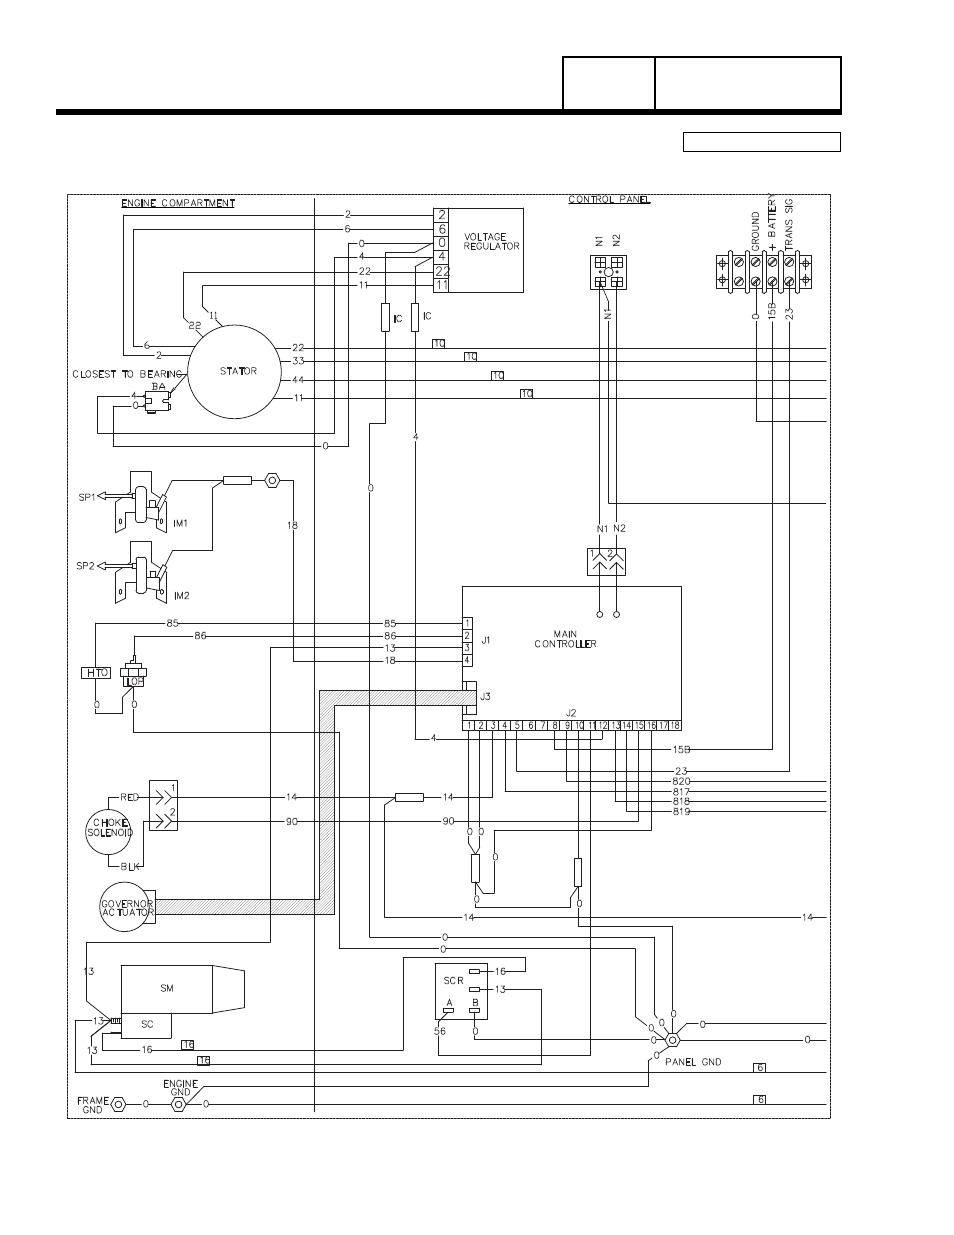 hight resolution of wiring diagram 17 kw home standby group g part 7 generac power systems 8 kw lp user manual page 178 192